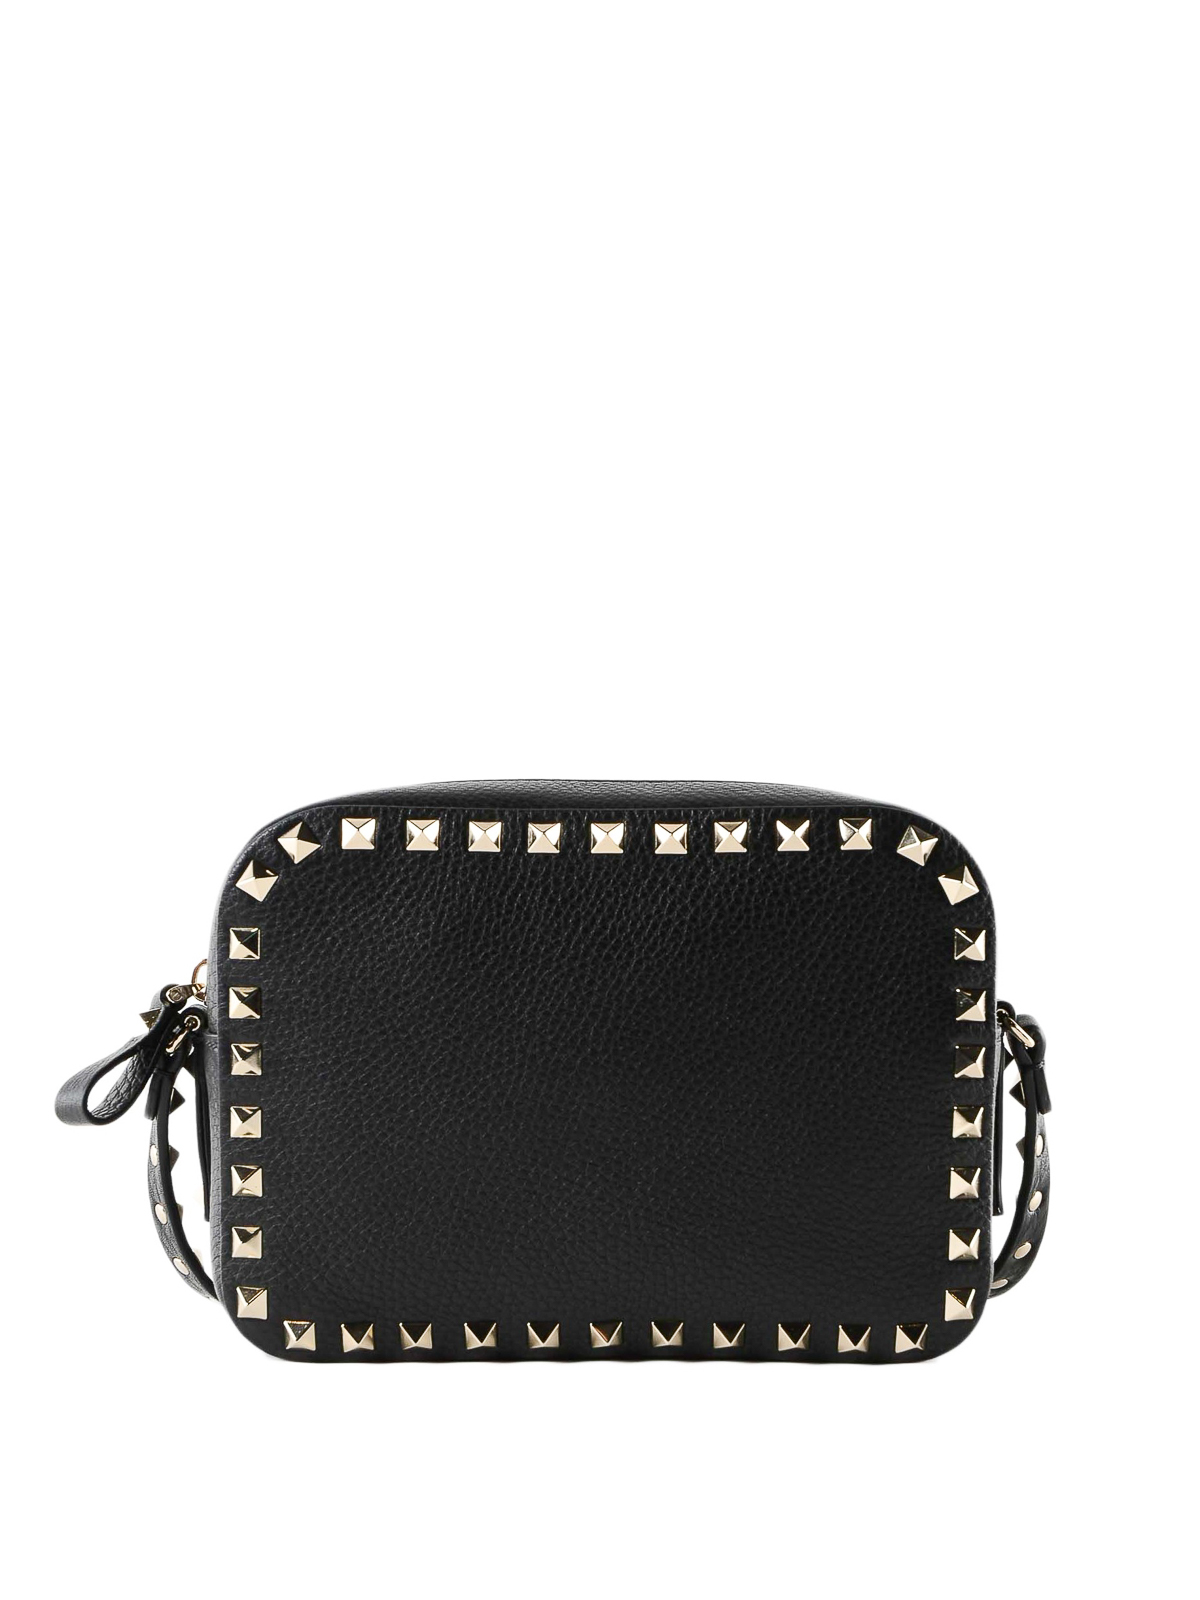 ca0f0961a0 Valentino Garavani Rockstud Black Leather Era Bag Shoulder